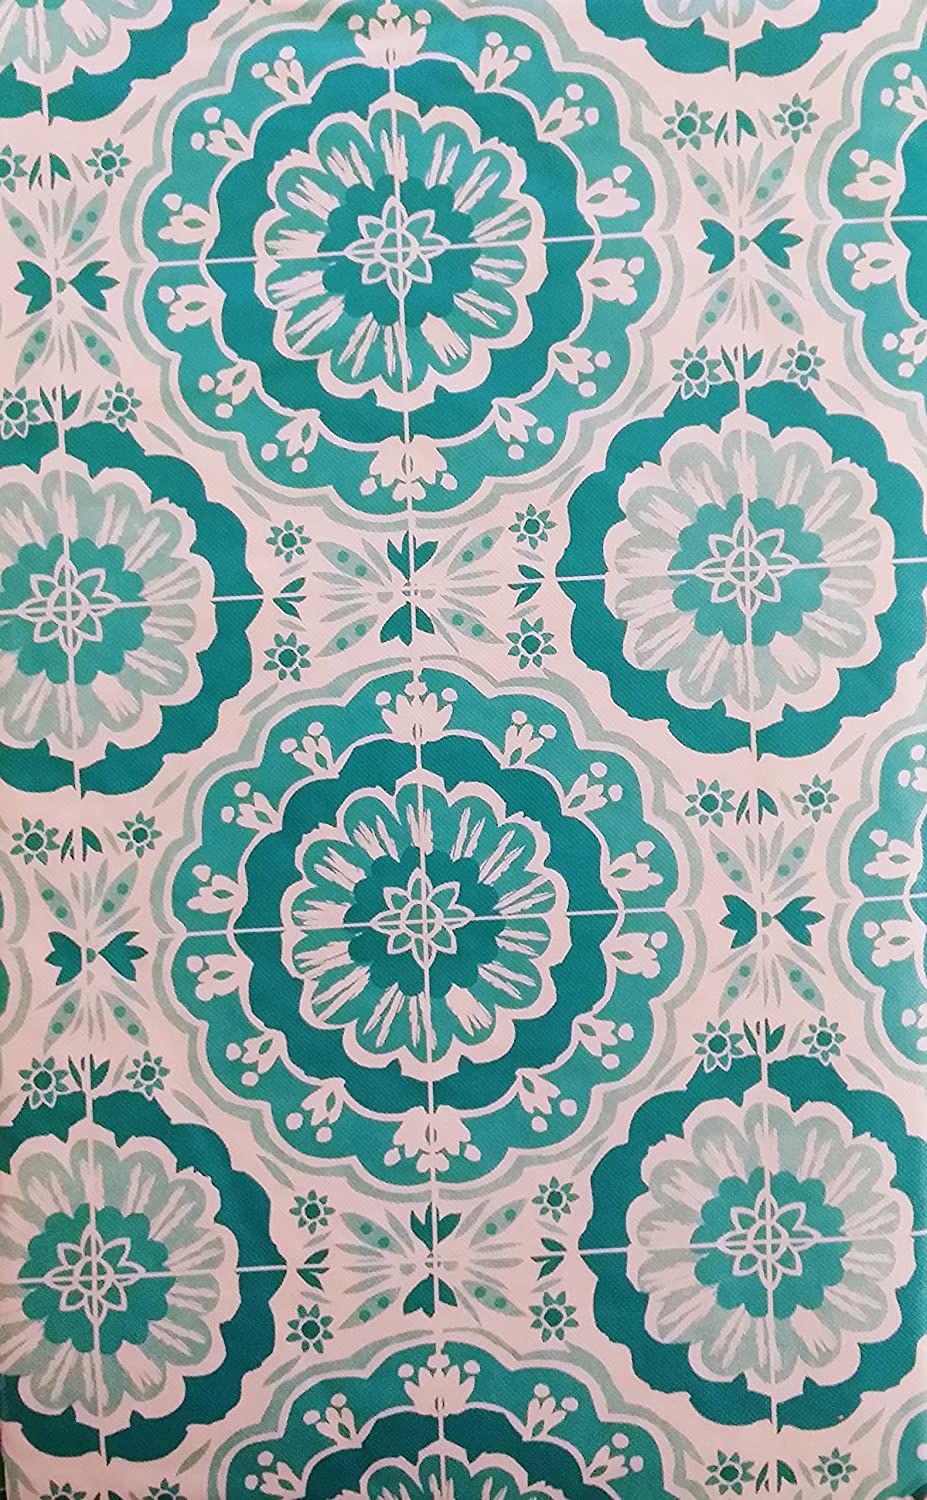 Elrene Home Fashions Bursting Blooms of Color Vinyl Flannel Back Tablecloth 52 x 90 Oblong, Shades of Blue//Teal Various Sizes and Colors